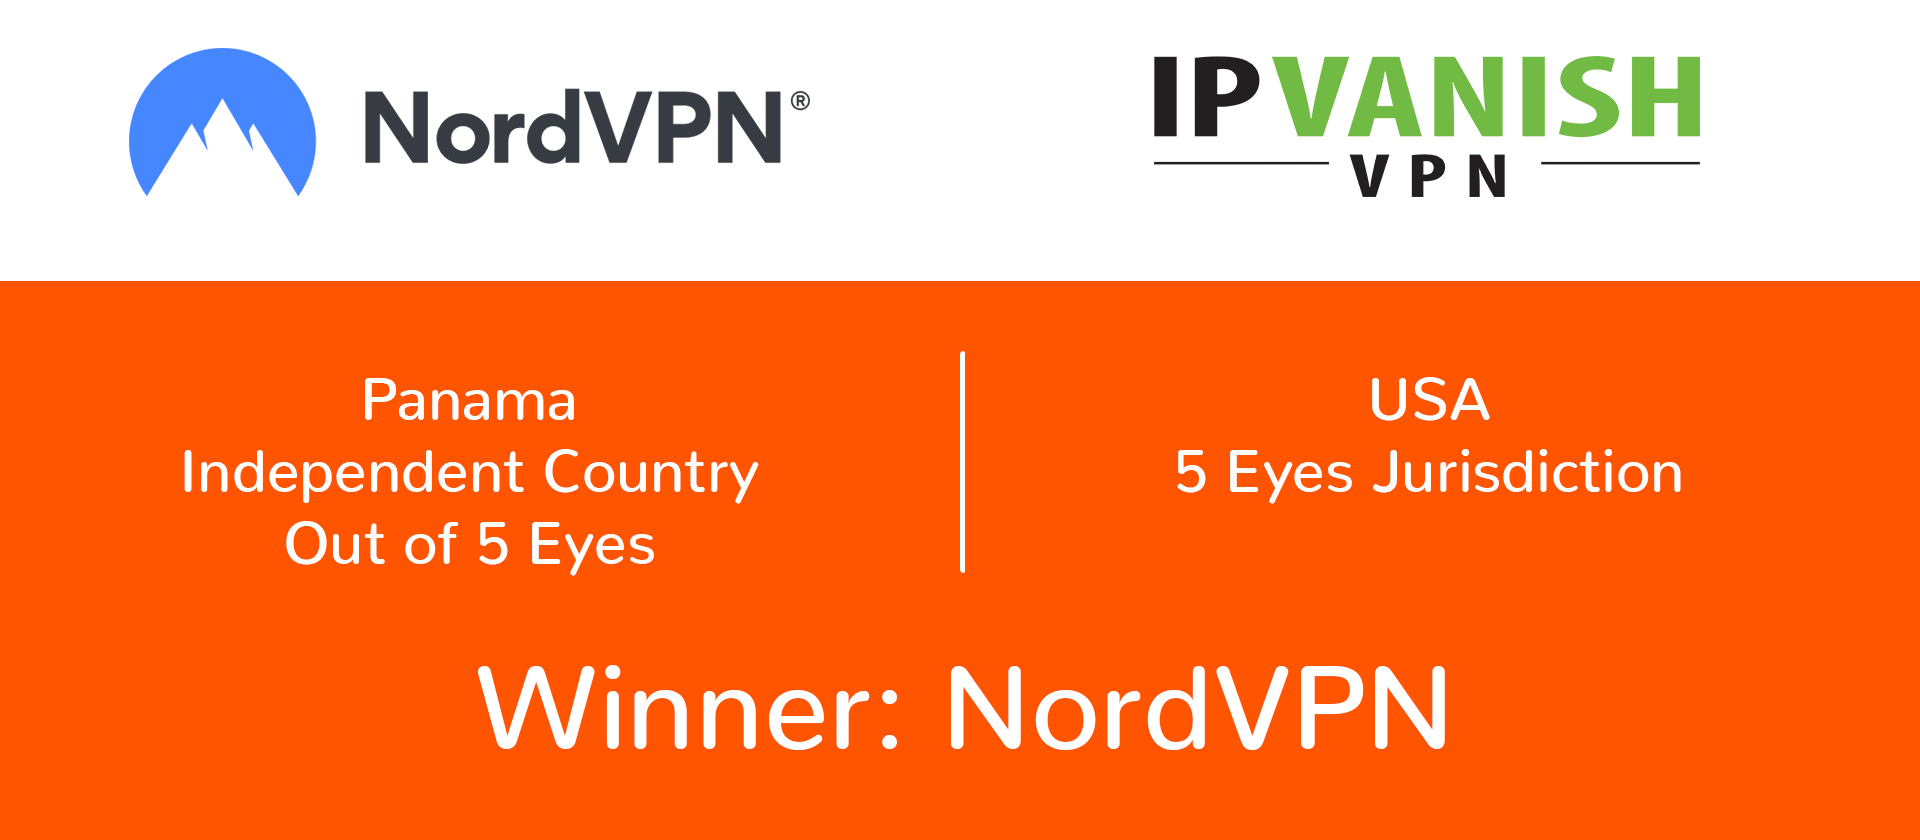 nordvpn strong jurisdiction